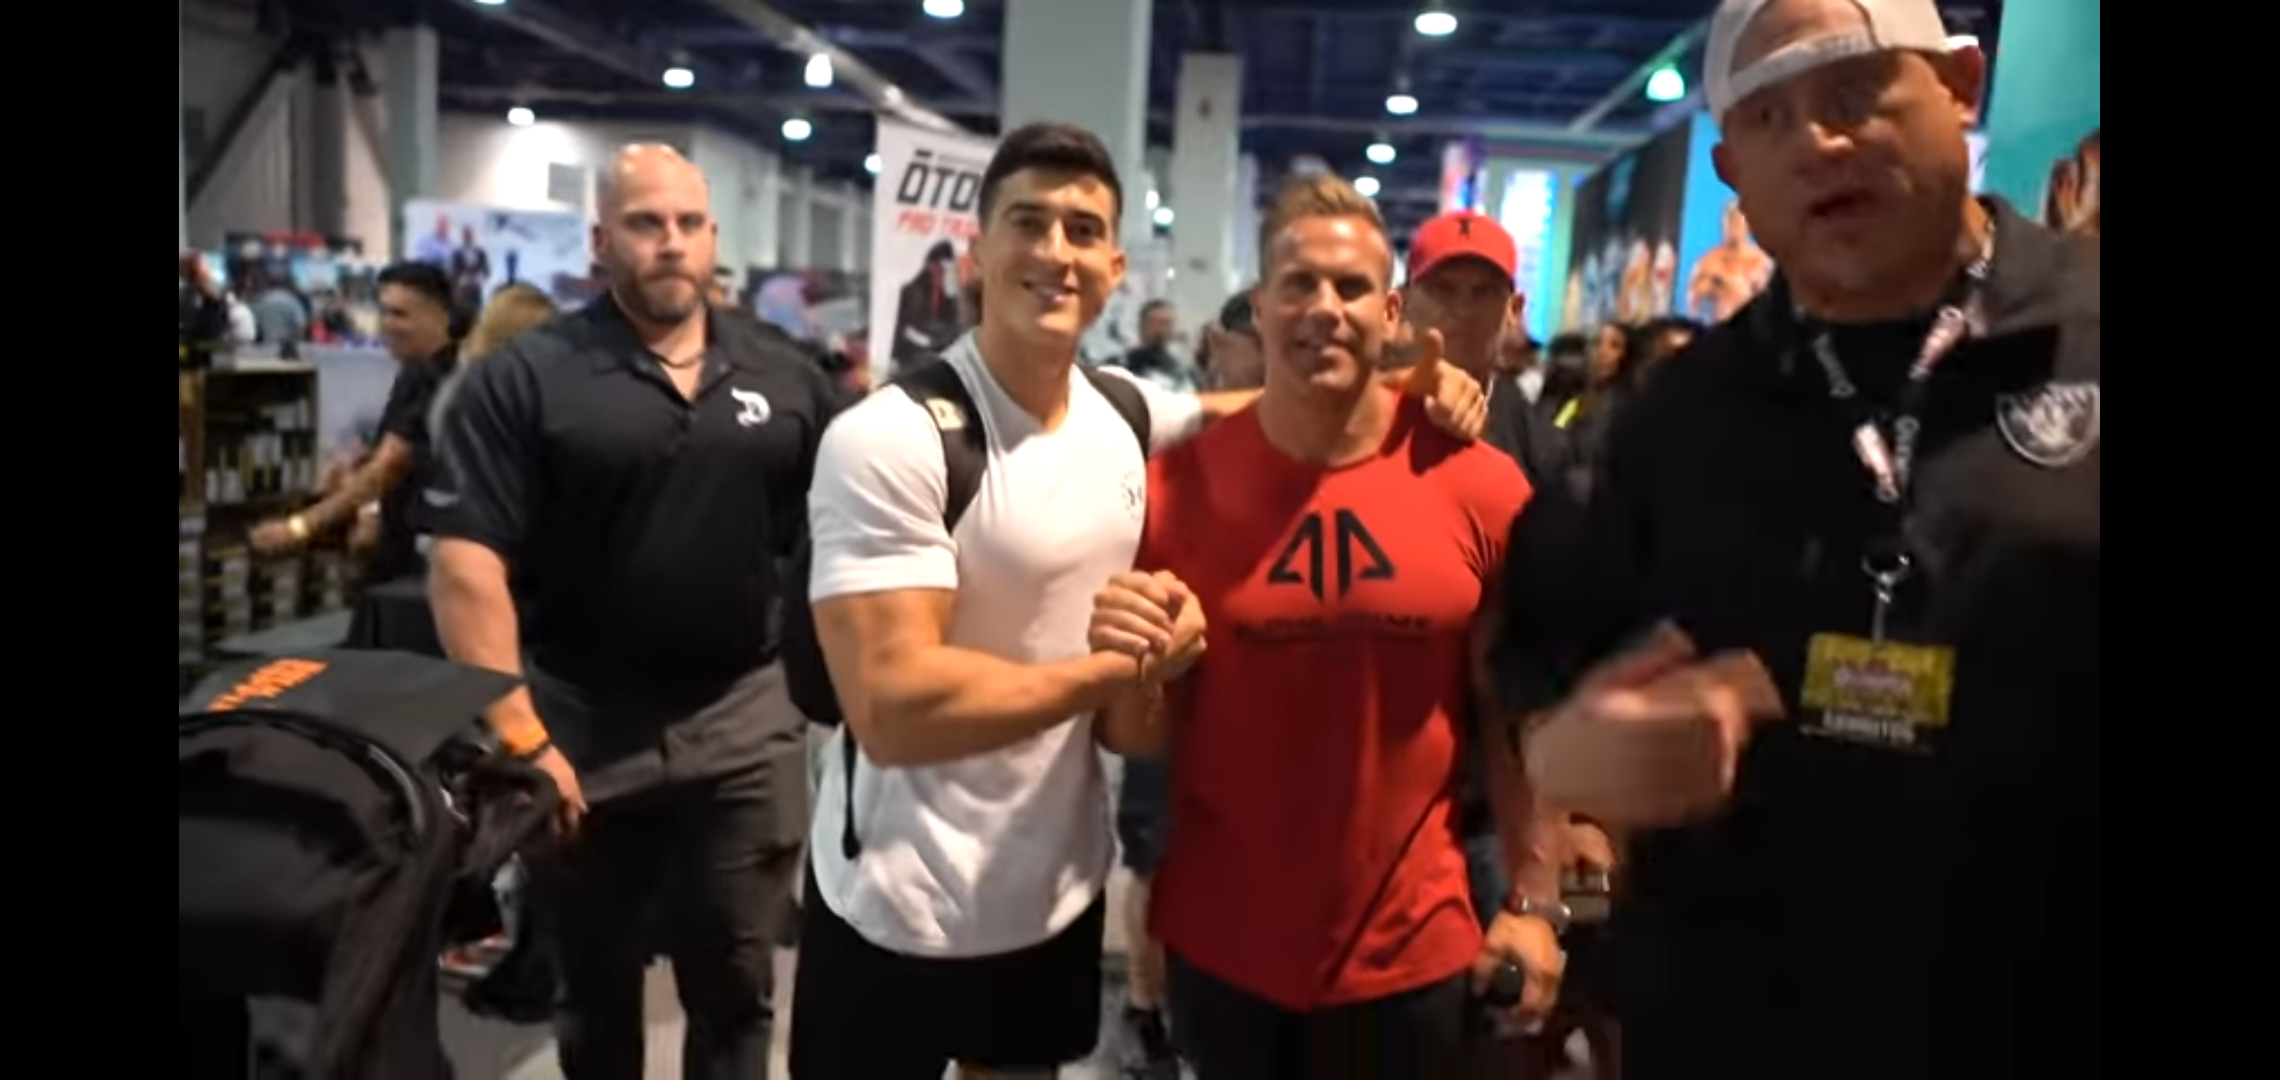 ¿Cuánto mide Jeff Seid? - Altura - Real height - Página 3 Screen17